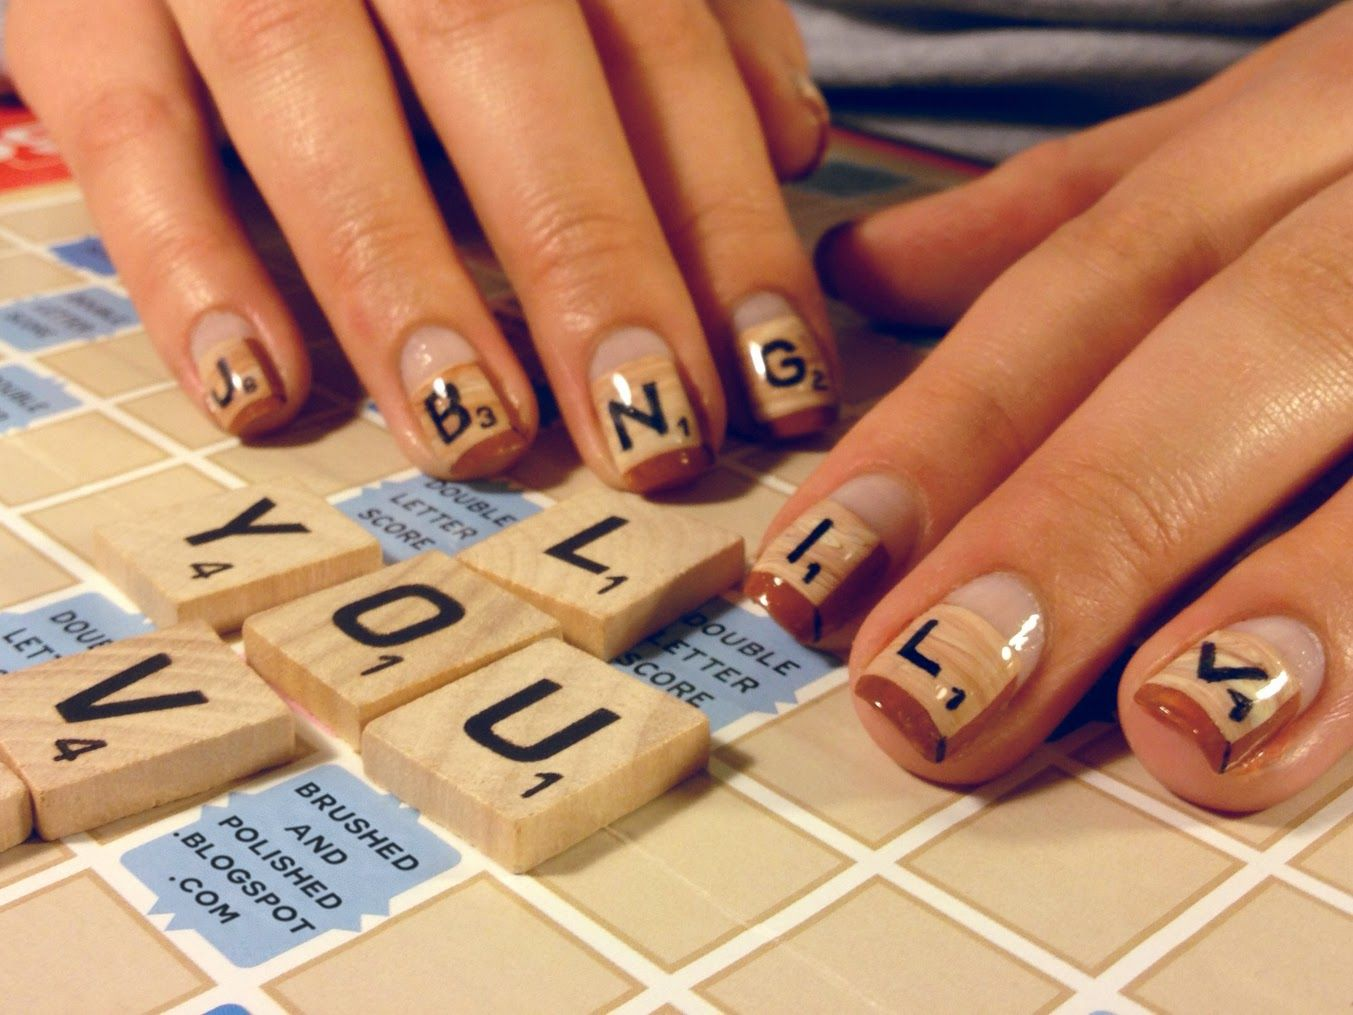 Scrabble Nail Art A Manicure To Beat The Winter Blues With Nail